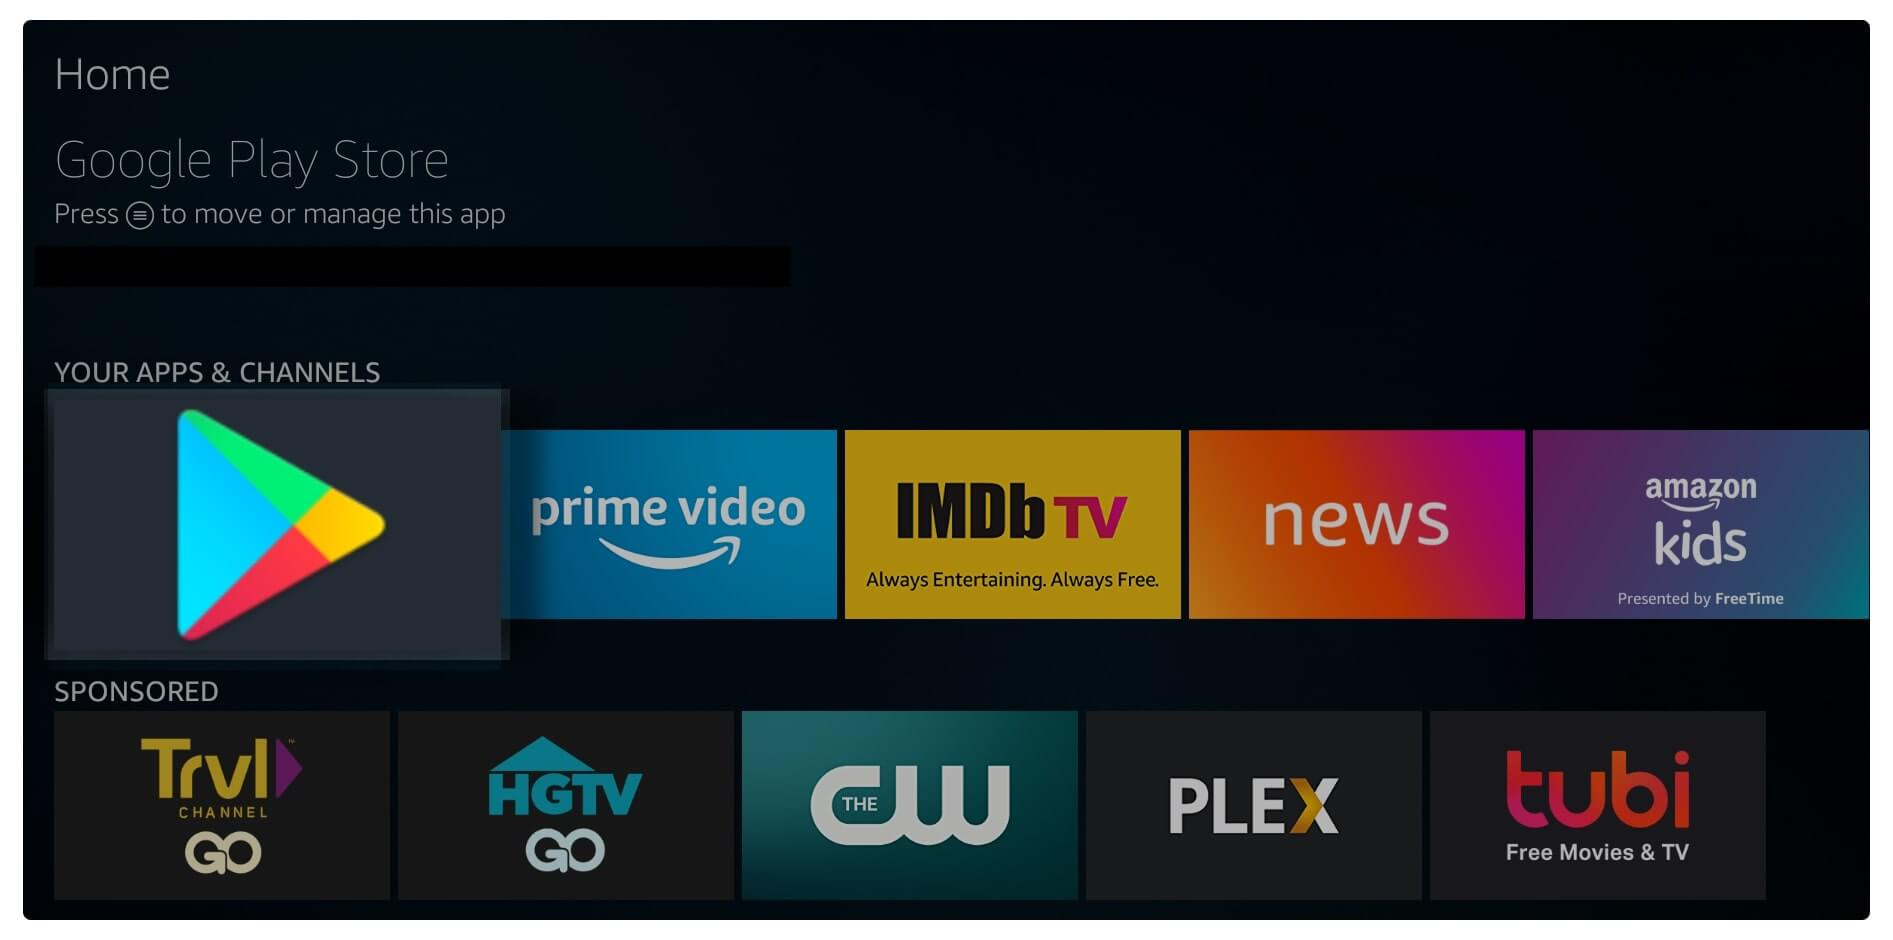 Install-Google-Play-Store-on-Amazon-Firestick